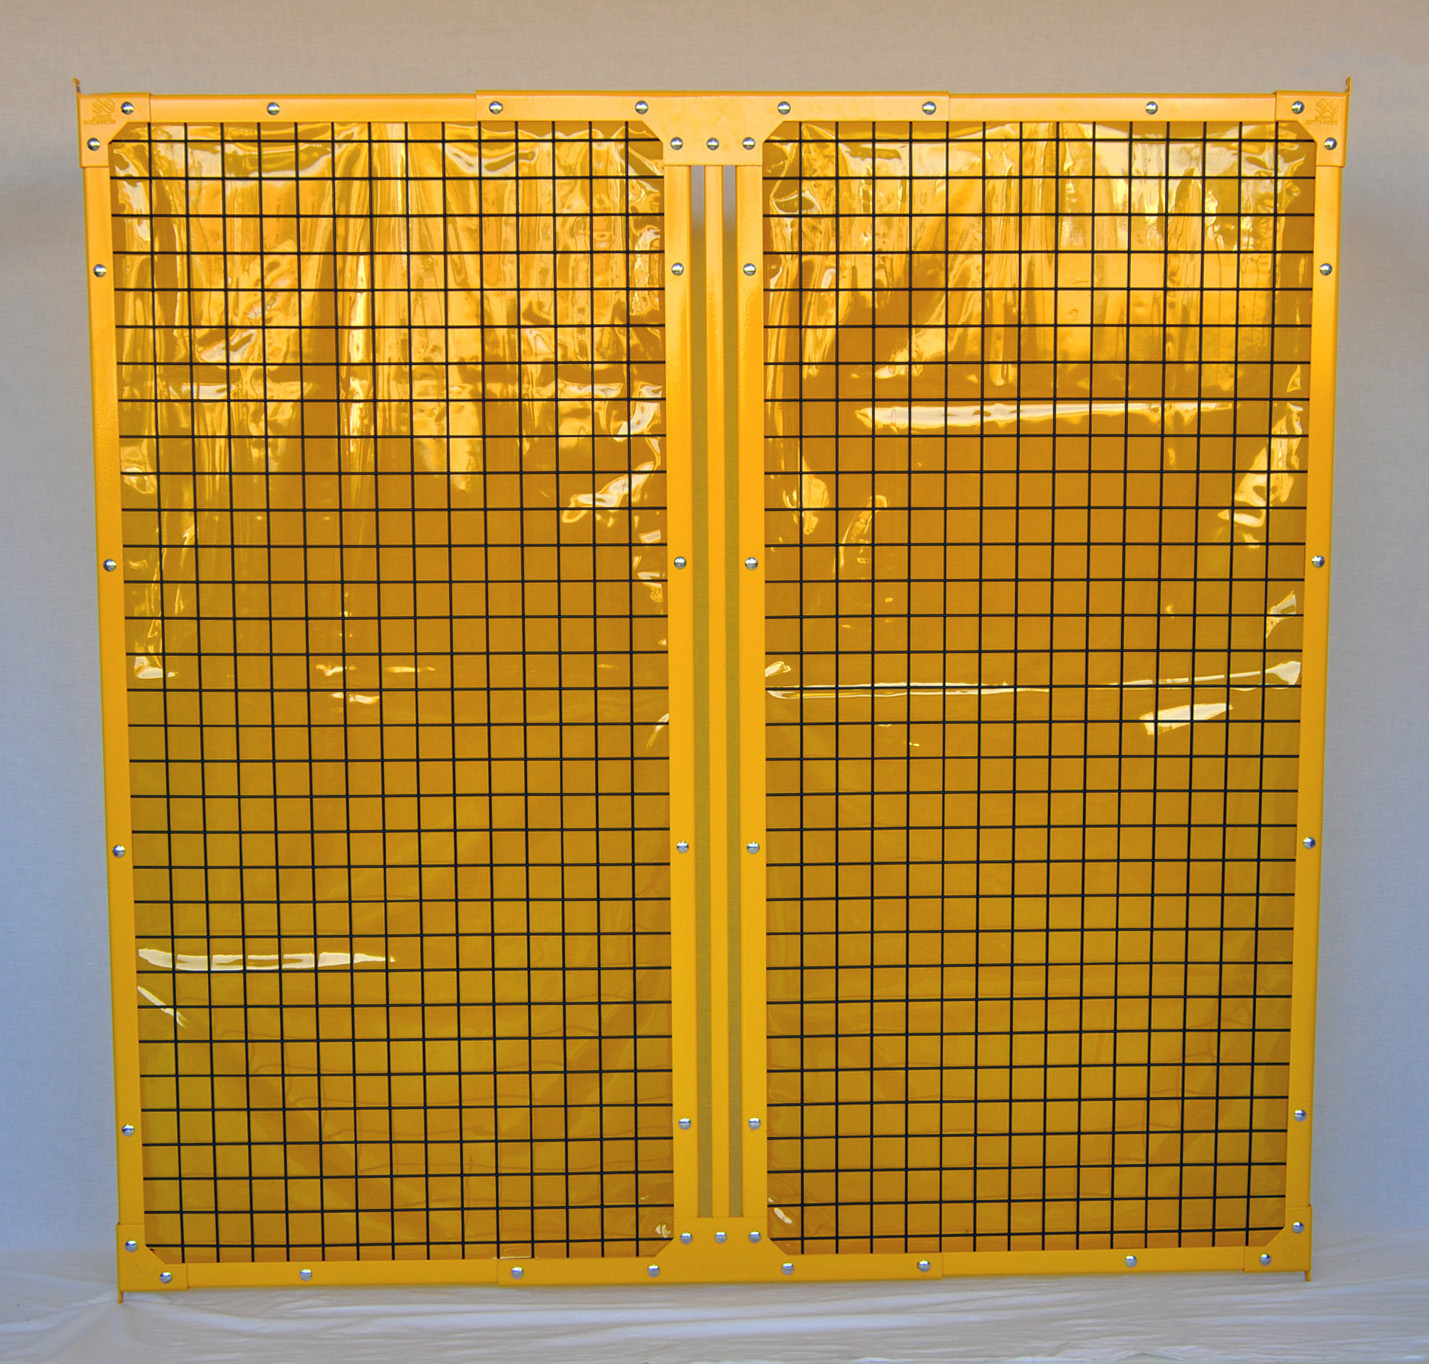 2000 mm 2x2 yellow weld screen panels with 2x2. Black Bedroom Furniture Sets. Home Design Ideas